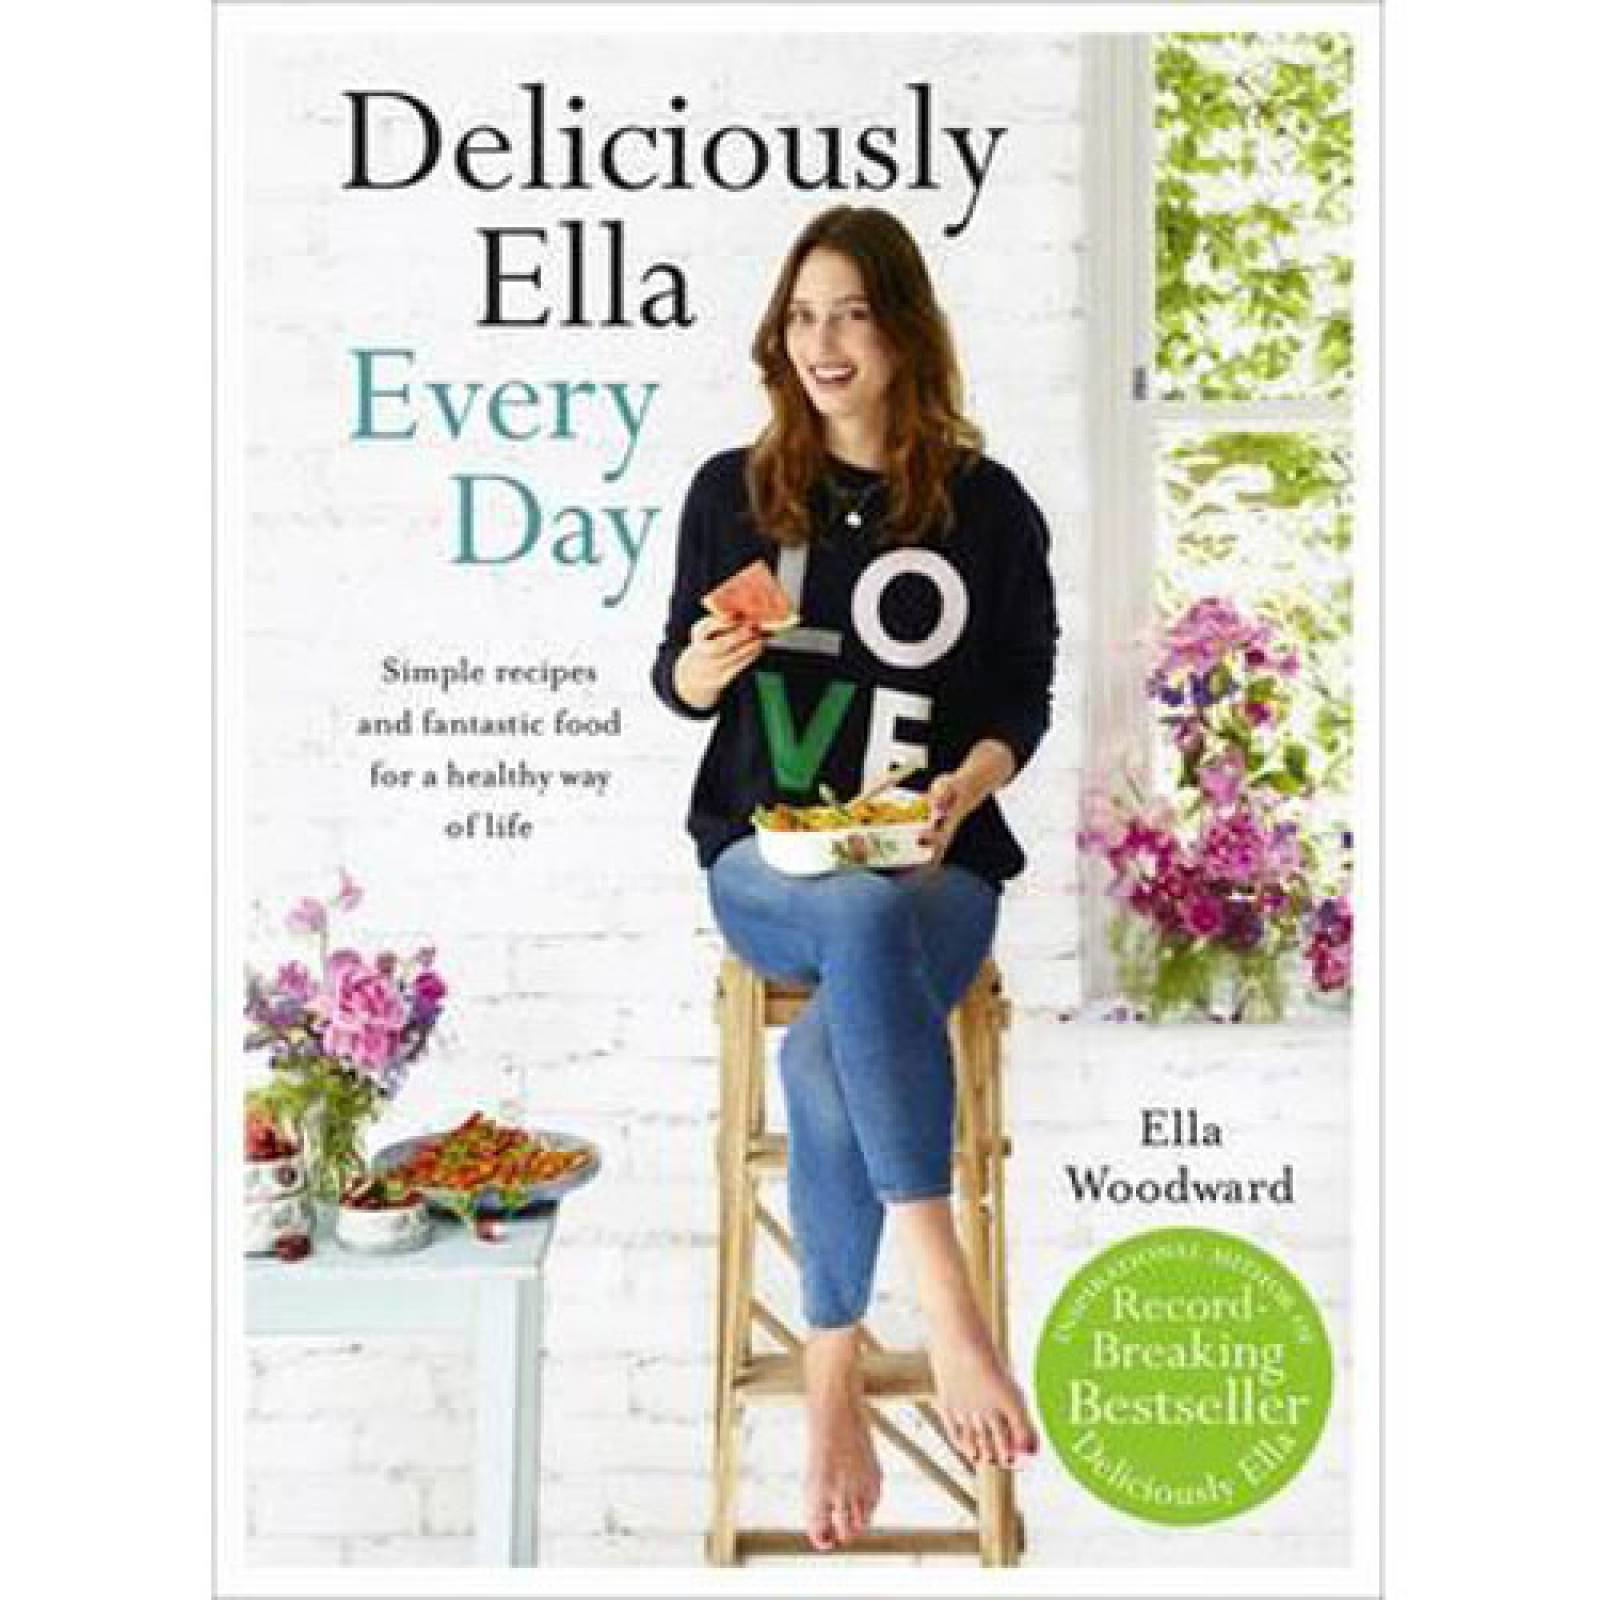 Deliciously Ella Every Day Hardback Book thumbnails